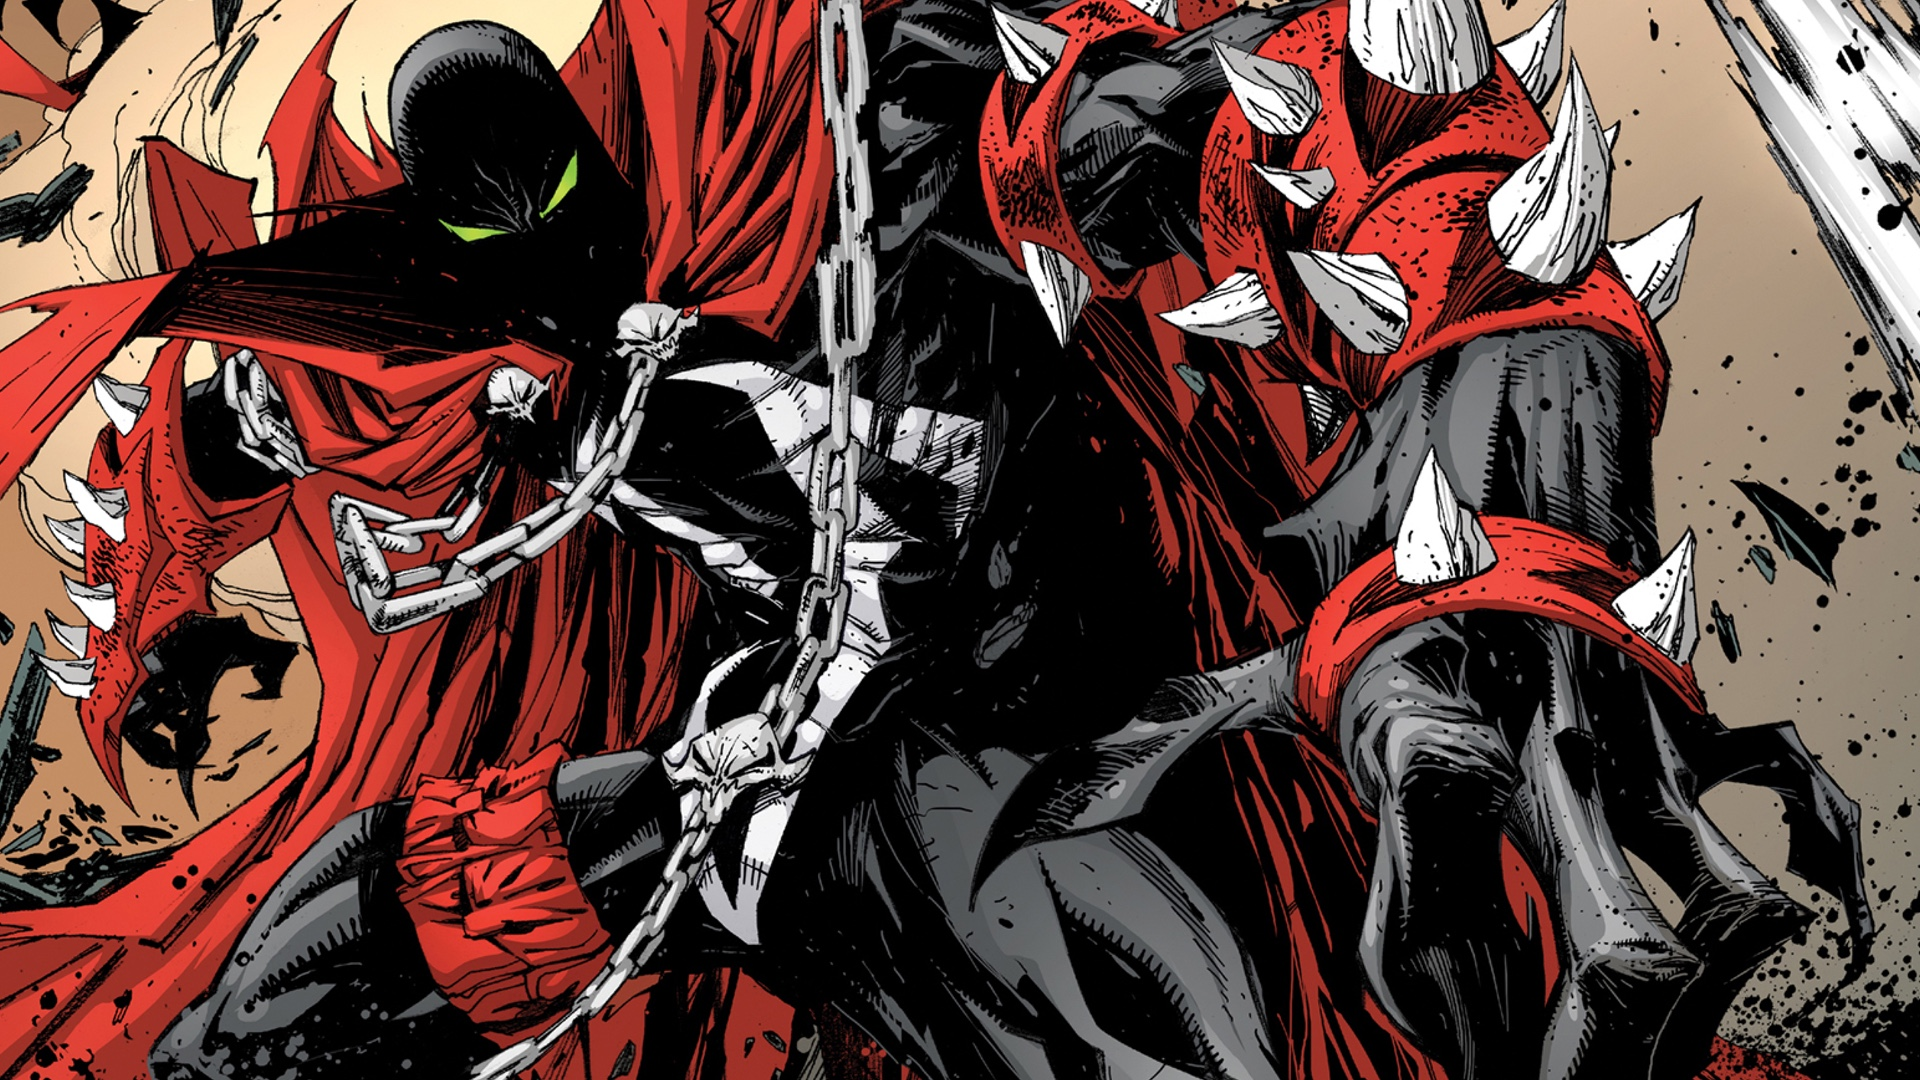 todd mcfarlane has completed his spawn movie script and hopes to